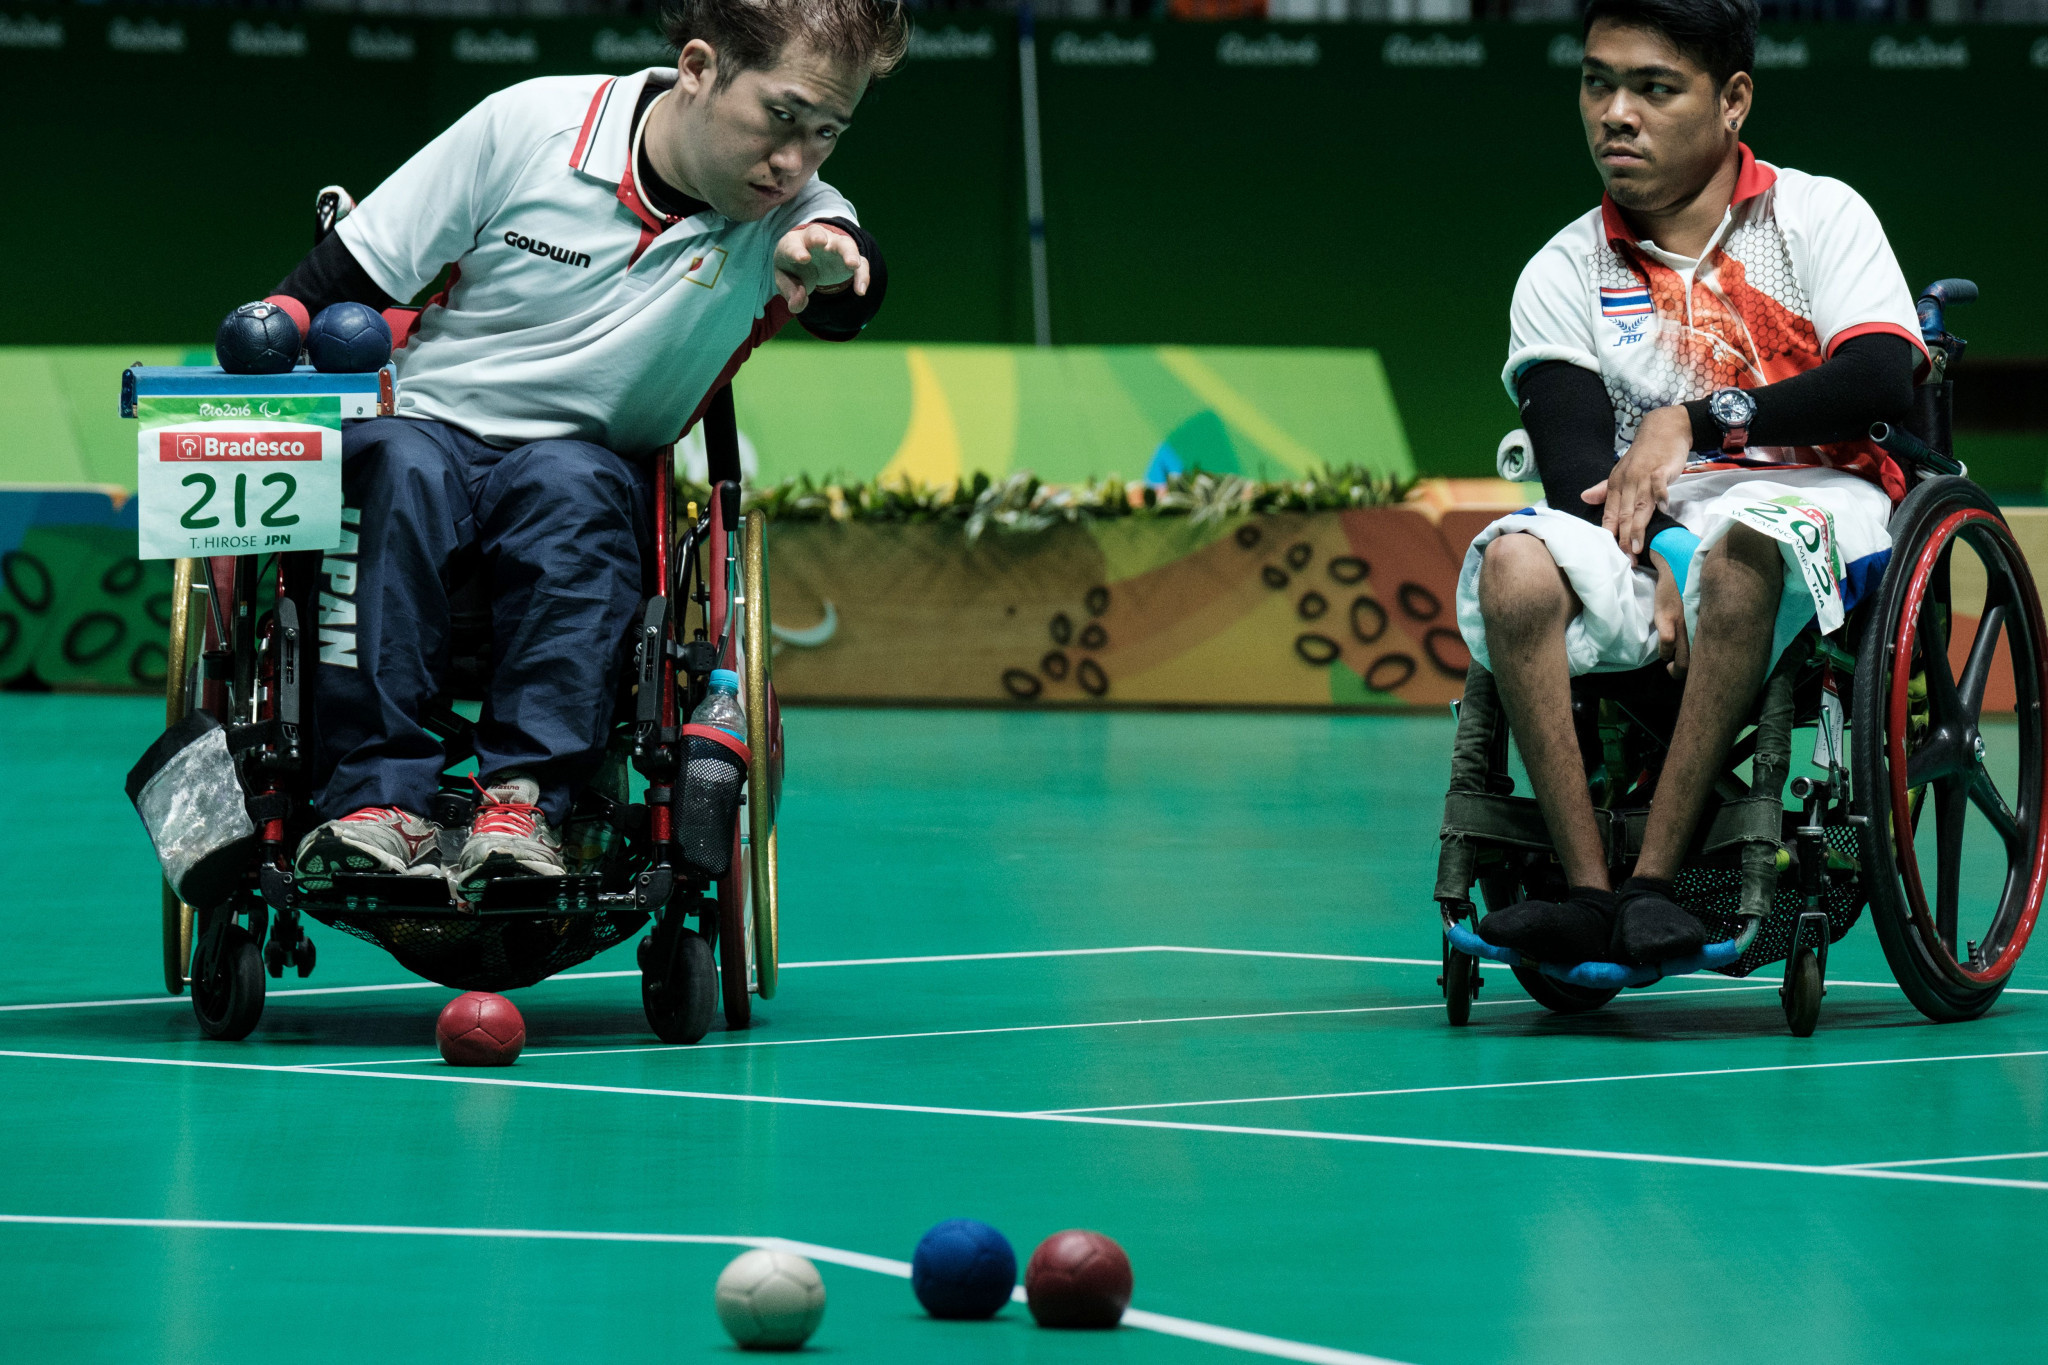 Boccia ball rules were tightened ahead of the Rio 2016 Paralympics ©Getty Images